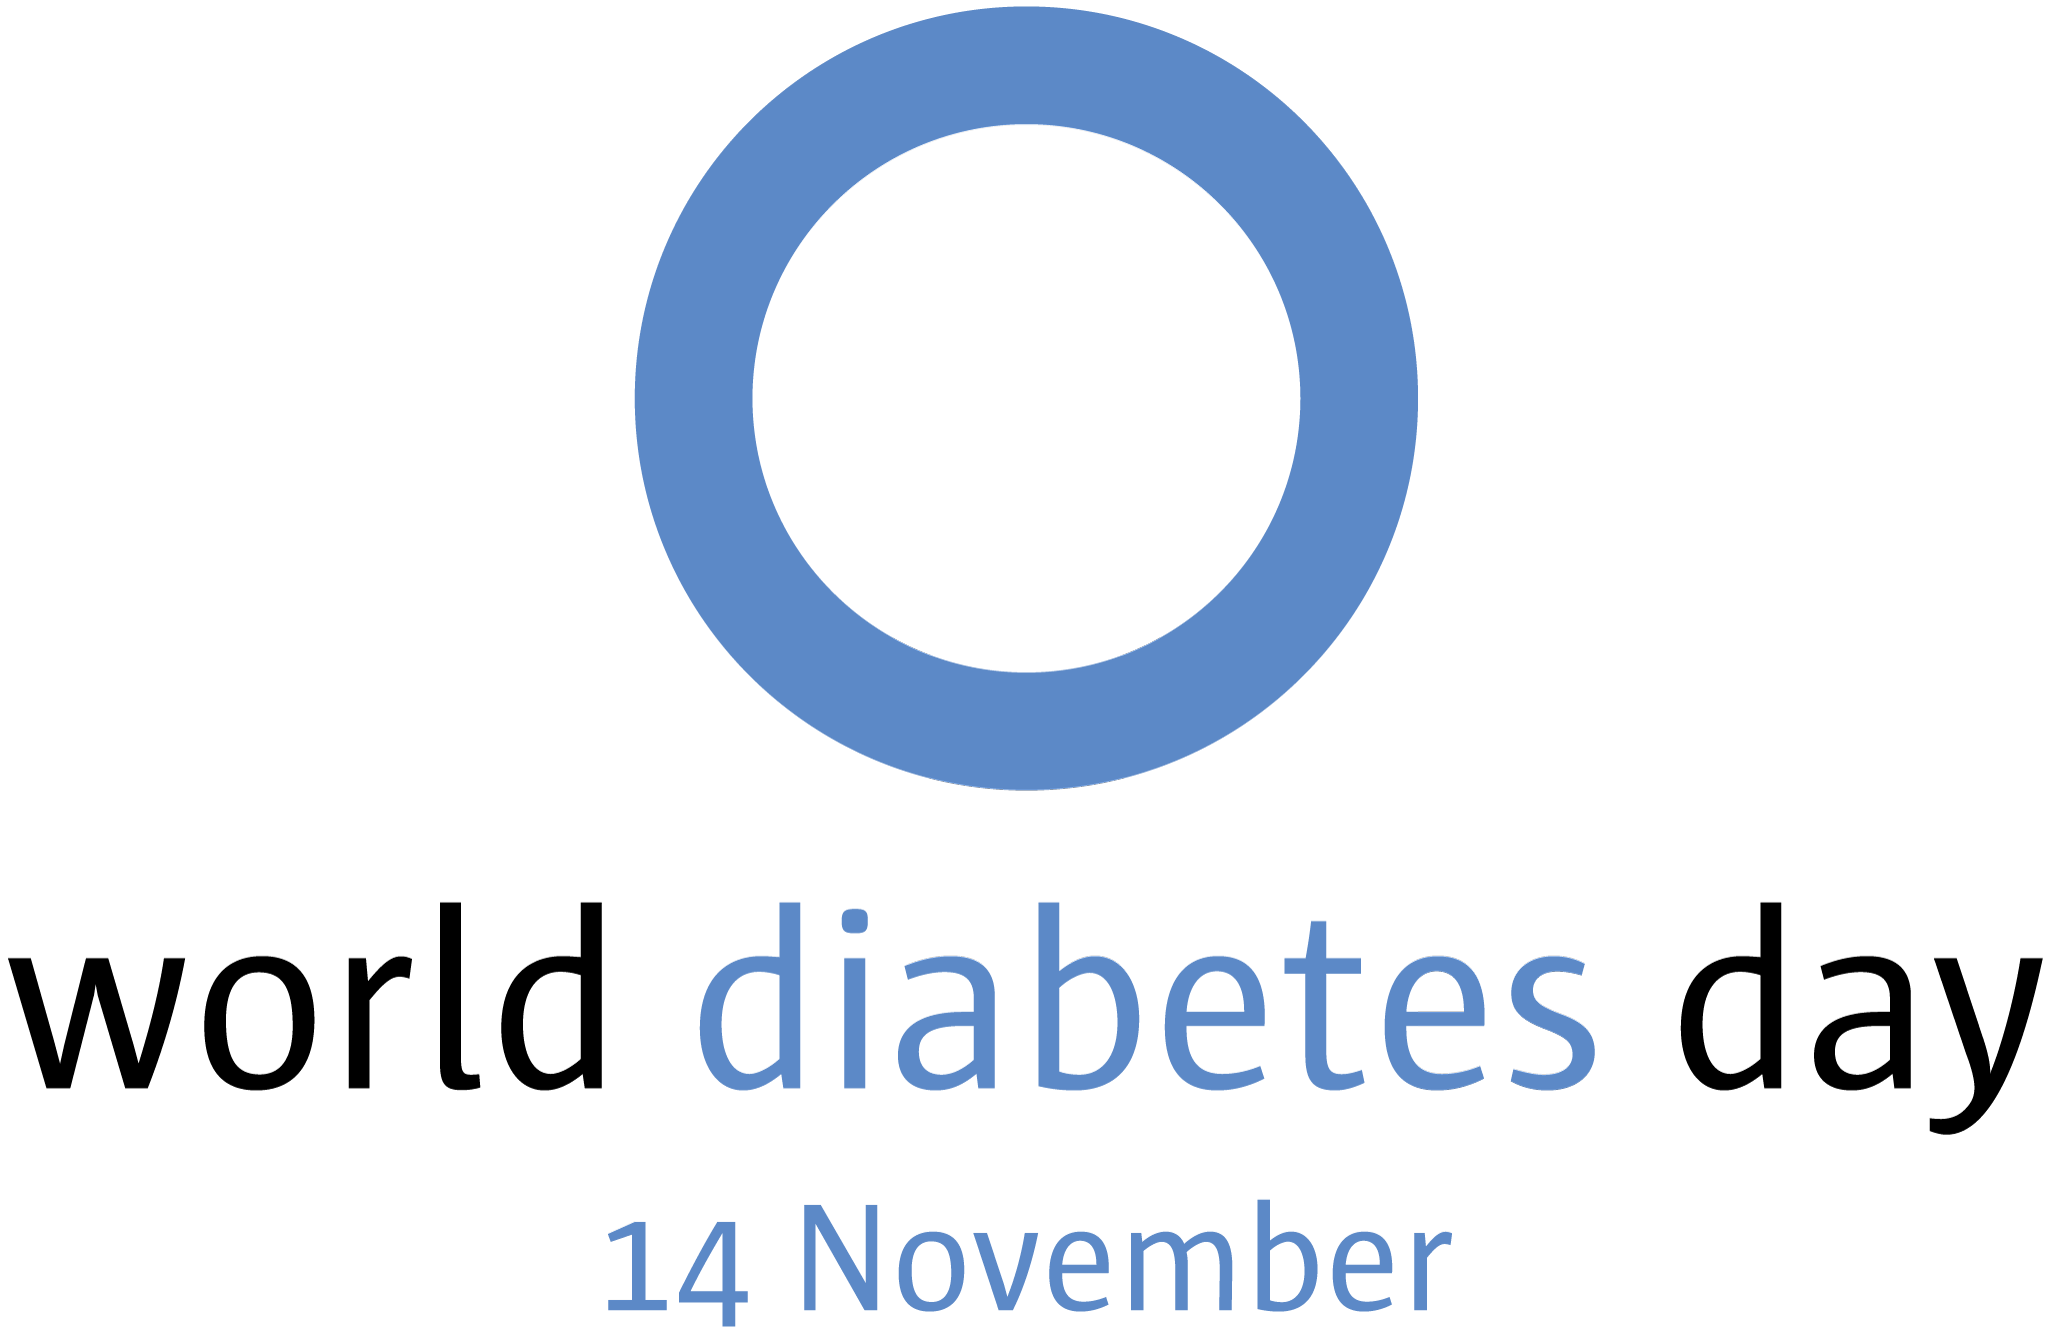 november is diabetes awareness month and world diabetes day